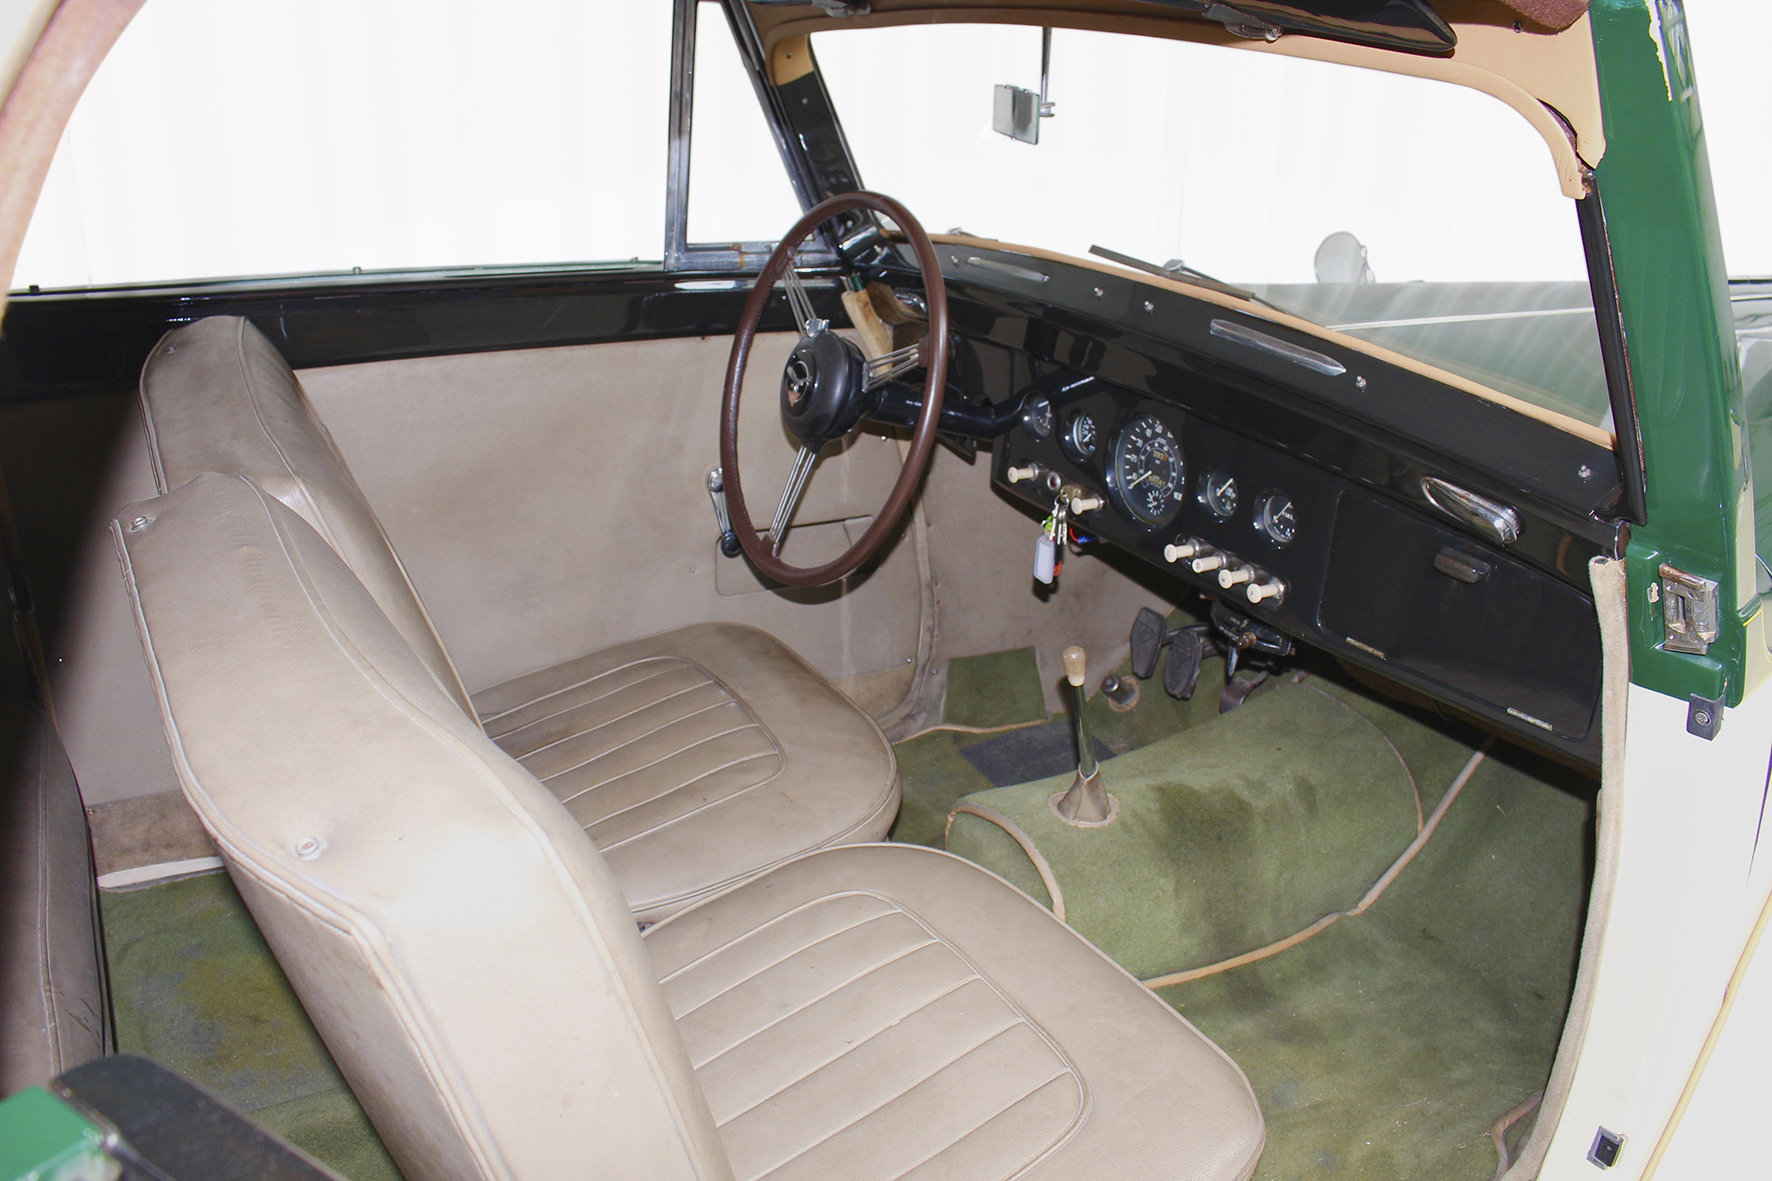 1952 TA21 DHC by Tickford in LHD For Sale (picture 5 of 6)